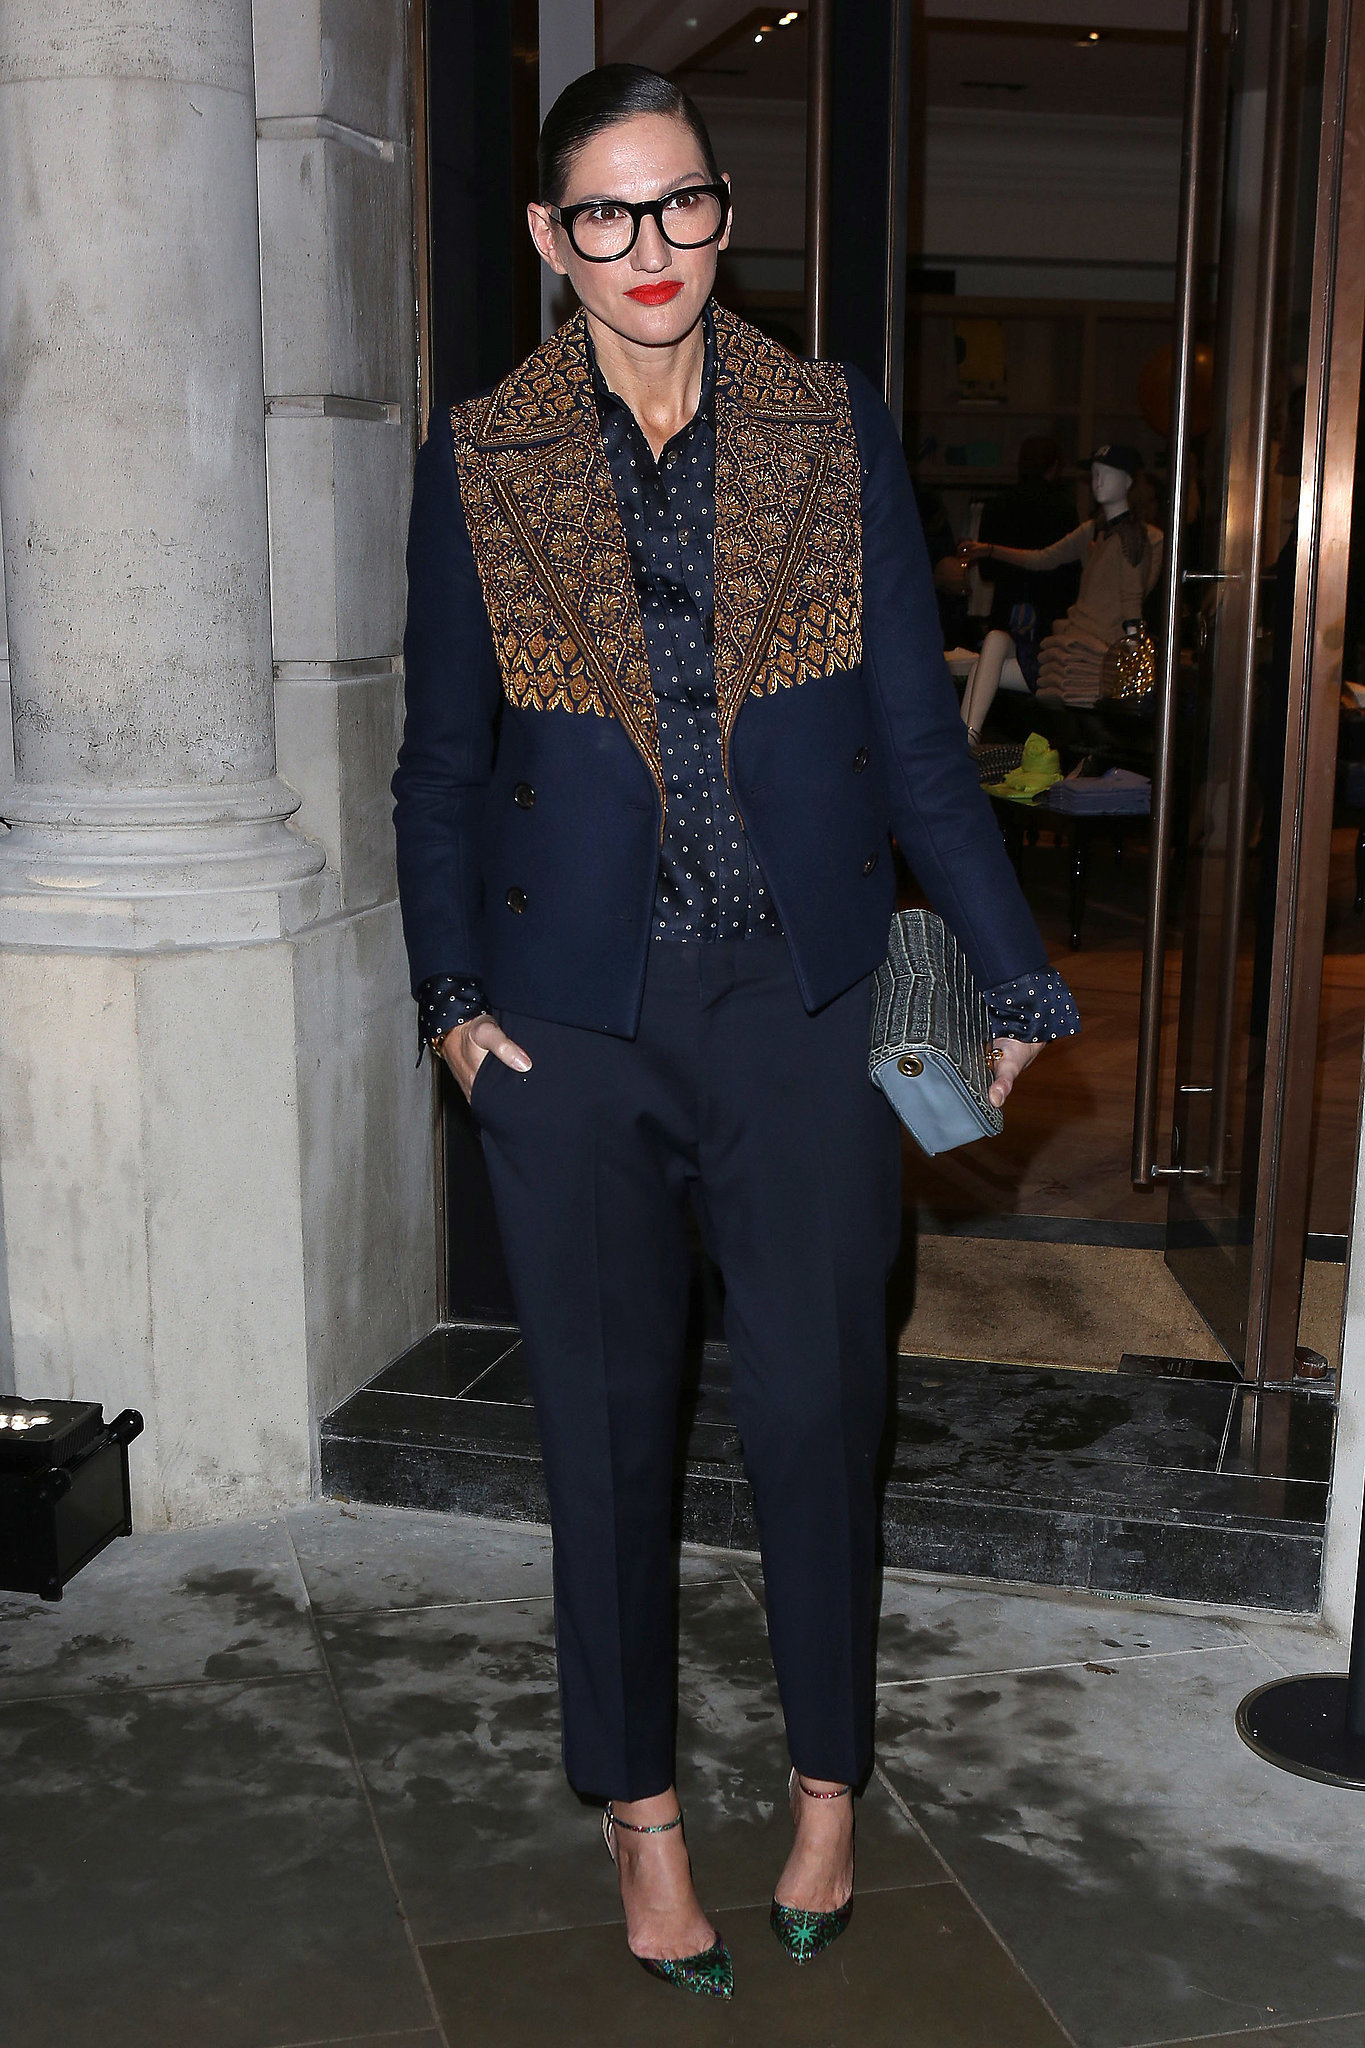 There's no such thing as too many prints for her, clearly, as she mixed a bold blouse with an even bolder jacket.